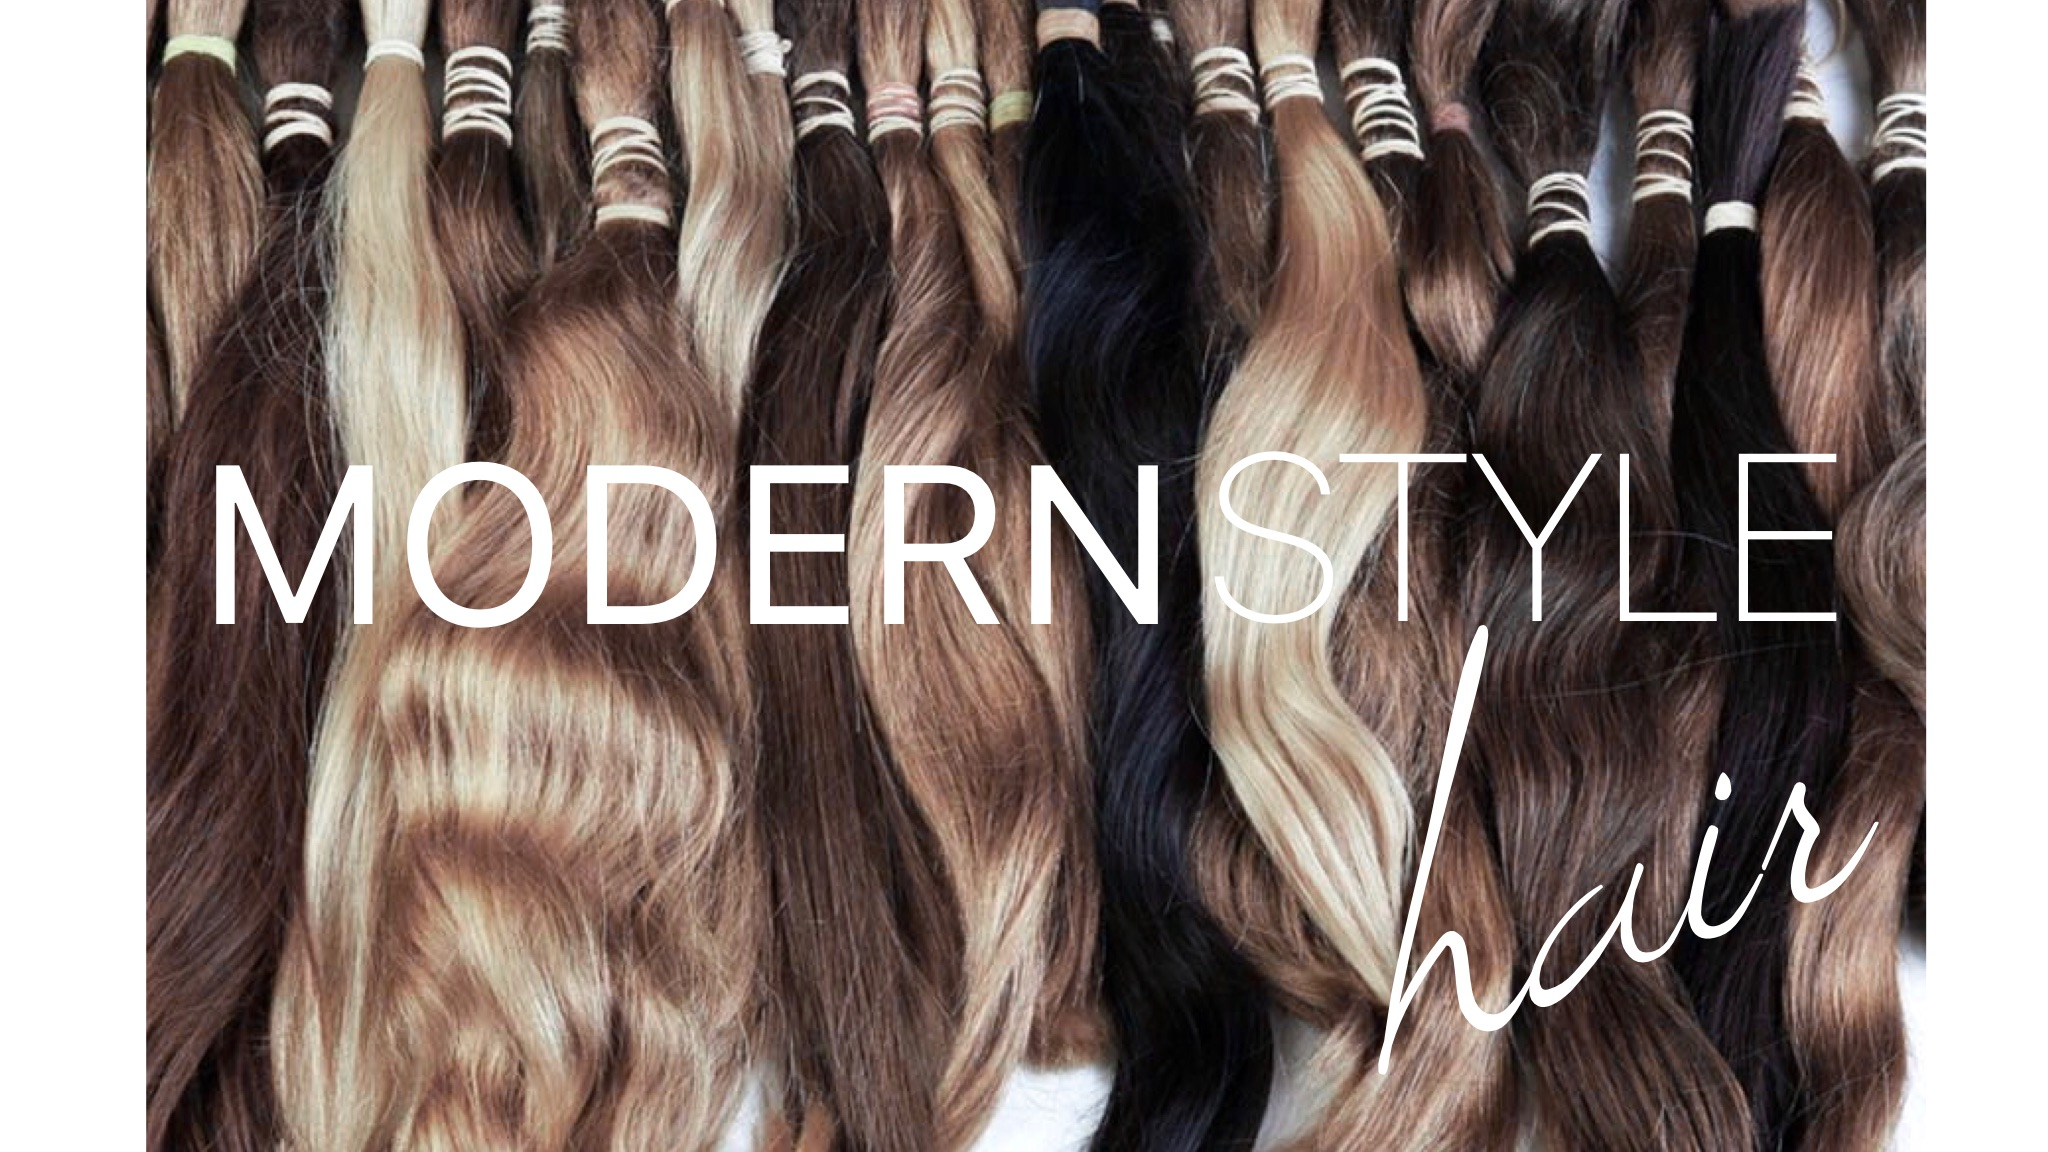 Hair extensions near me, best hair extensions in Charlotte,hand-tied hair extensions, tape in extensions, micro bead extensions, hair extensions Charlotte nc